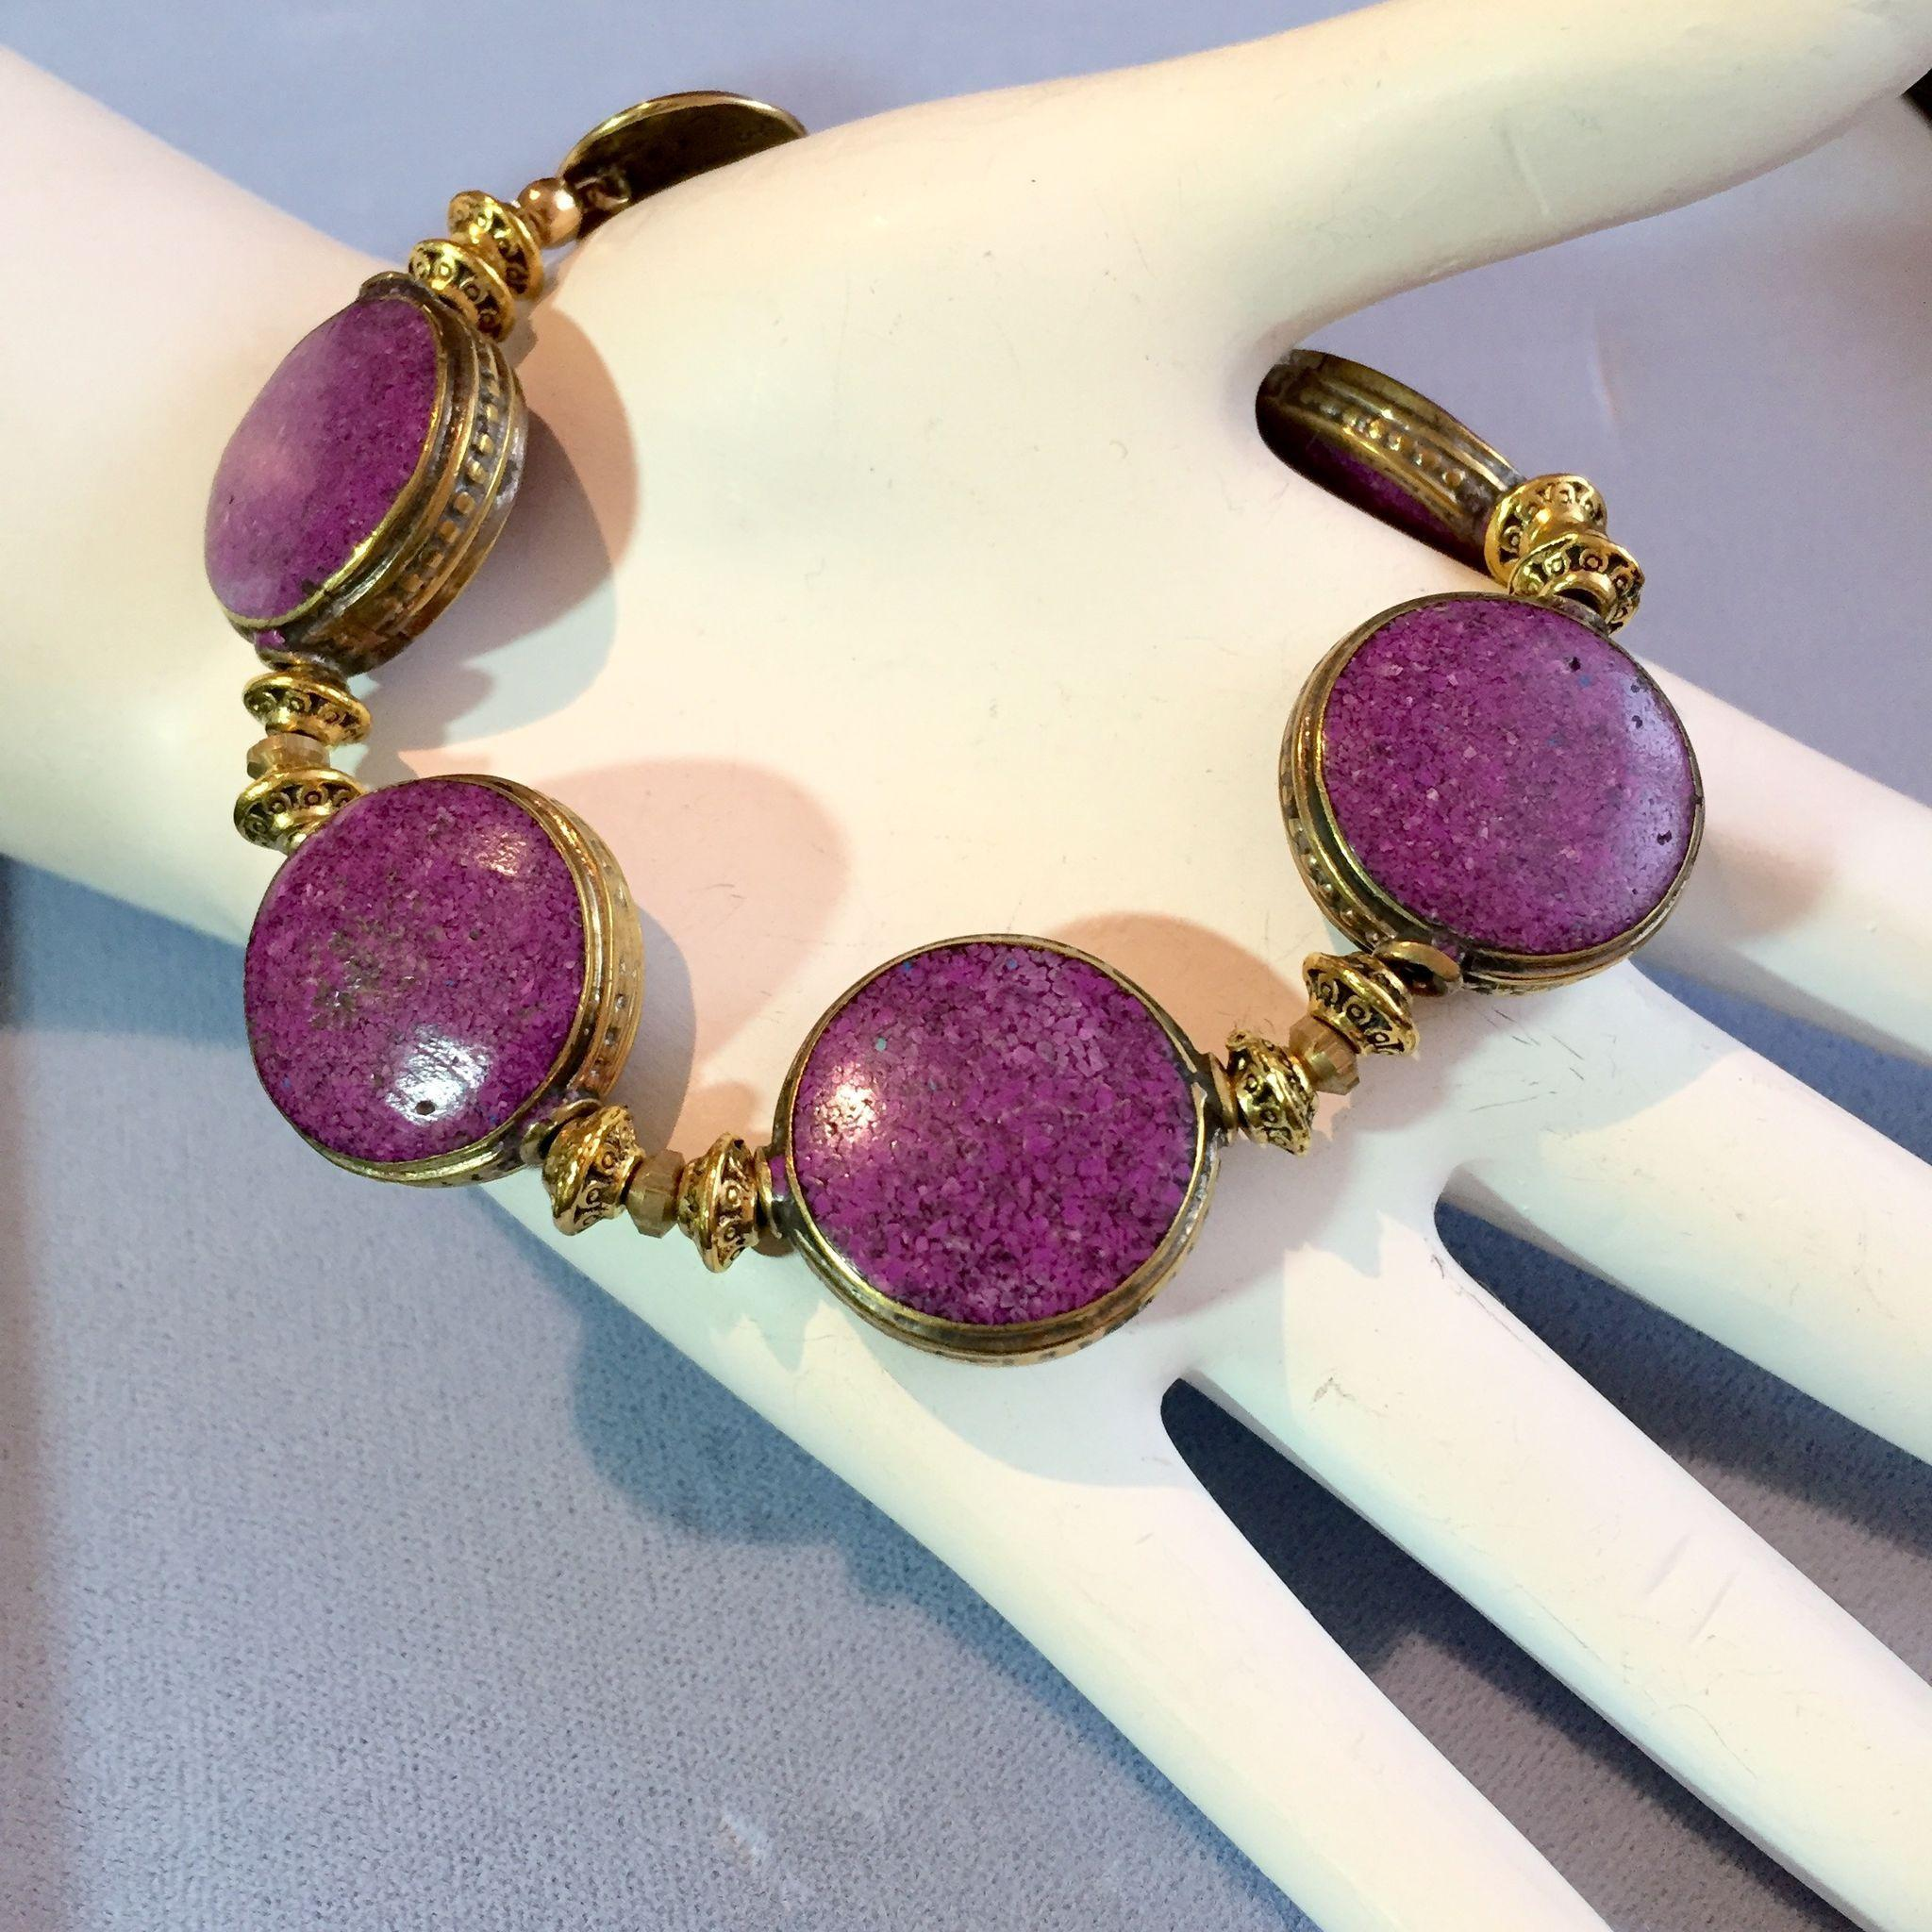 Rustic Brass and Purple Howlite Bracelet, 8-1/2 Inches